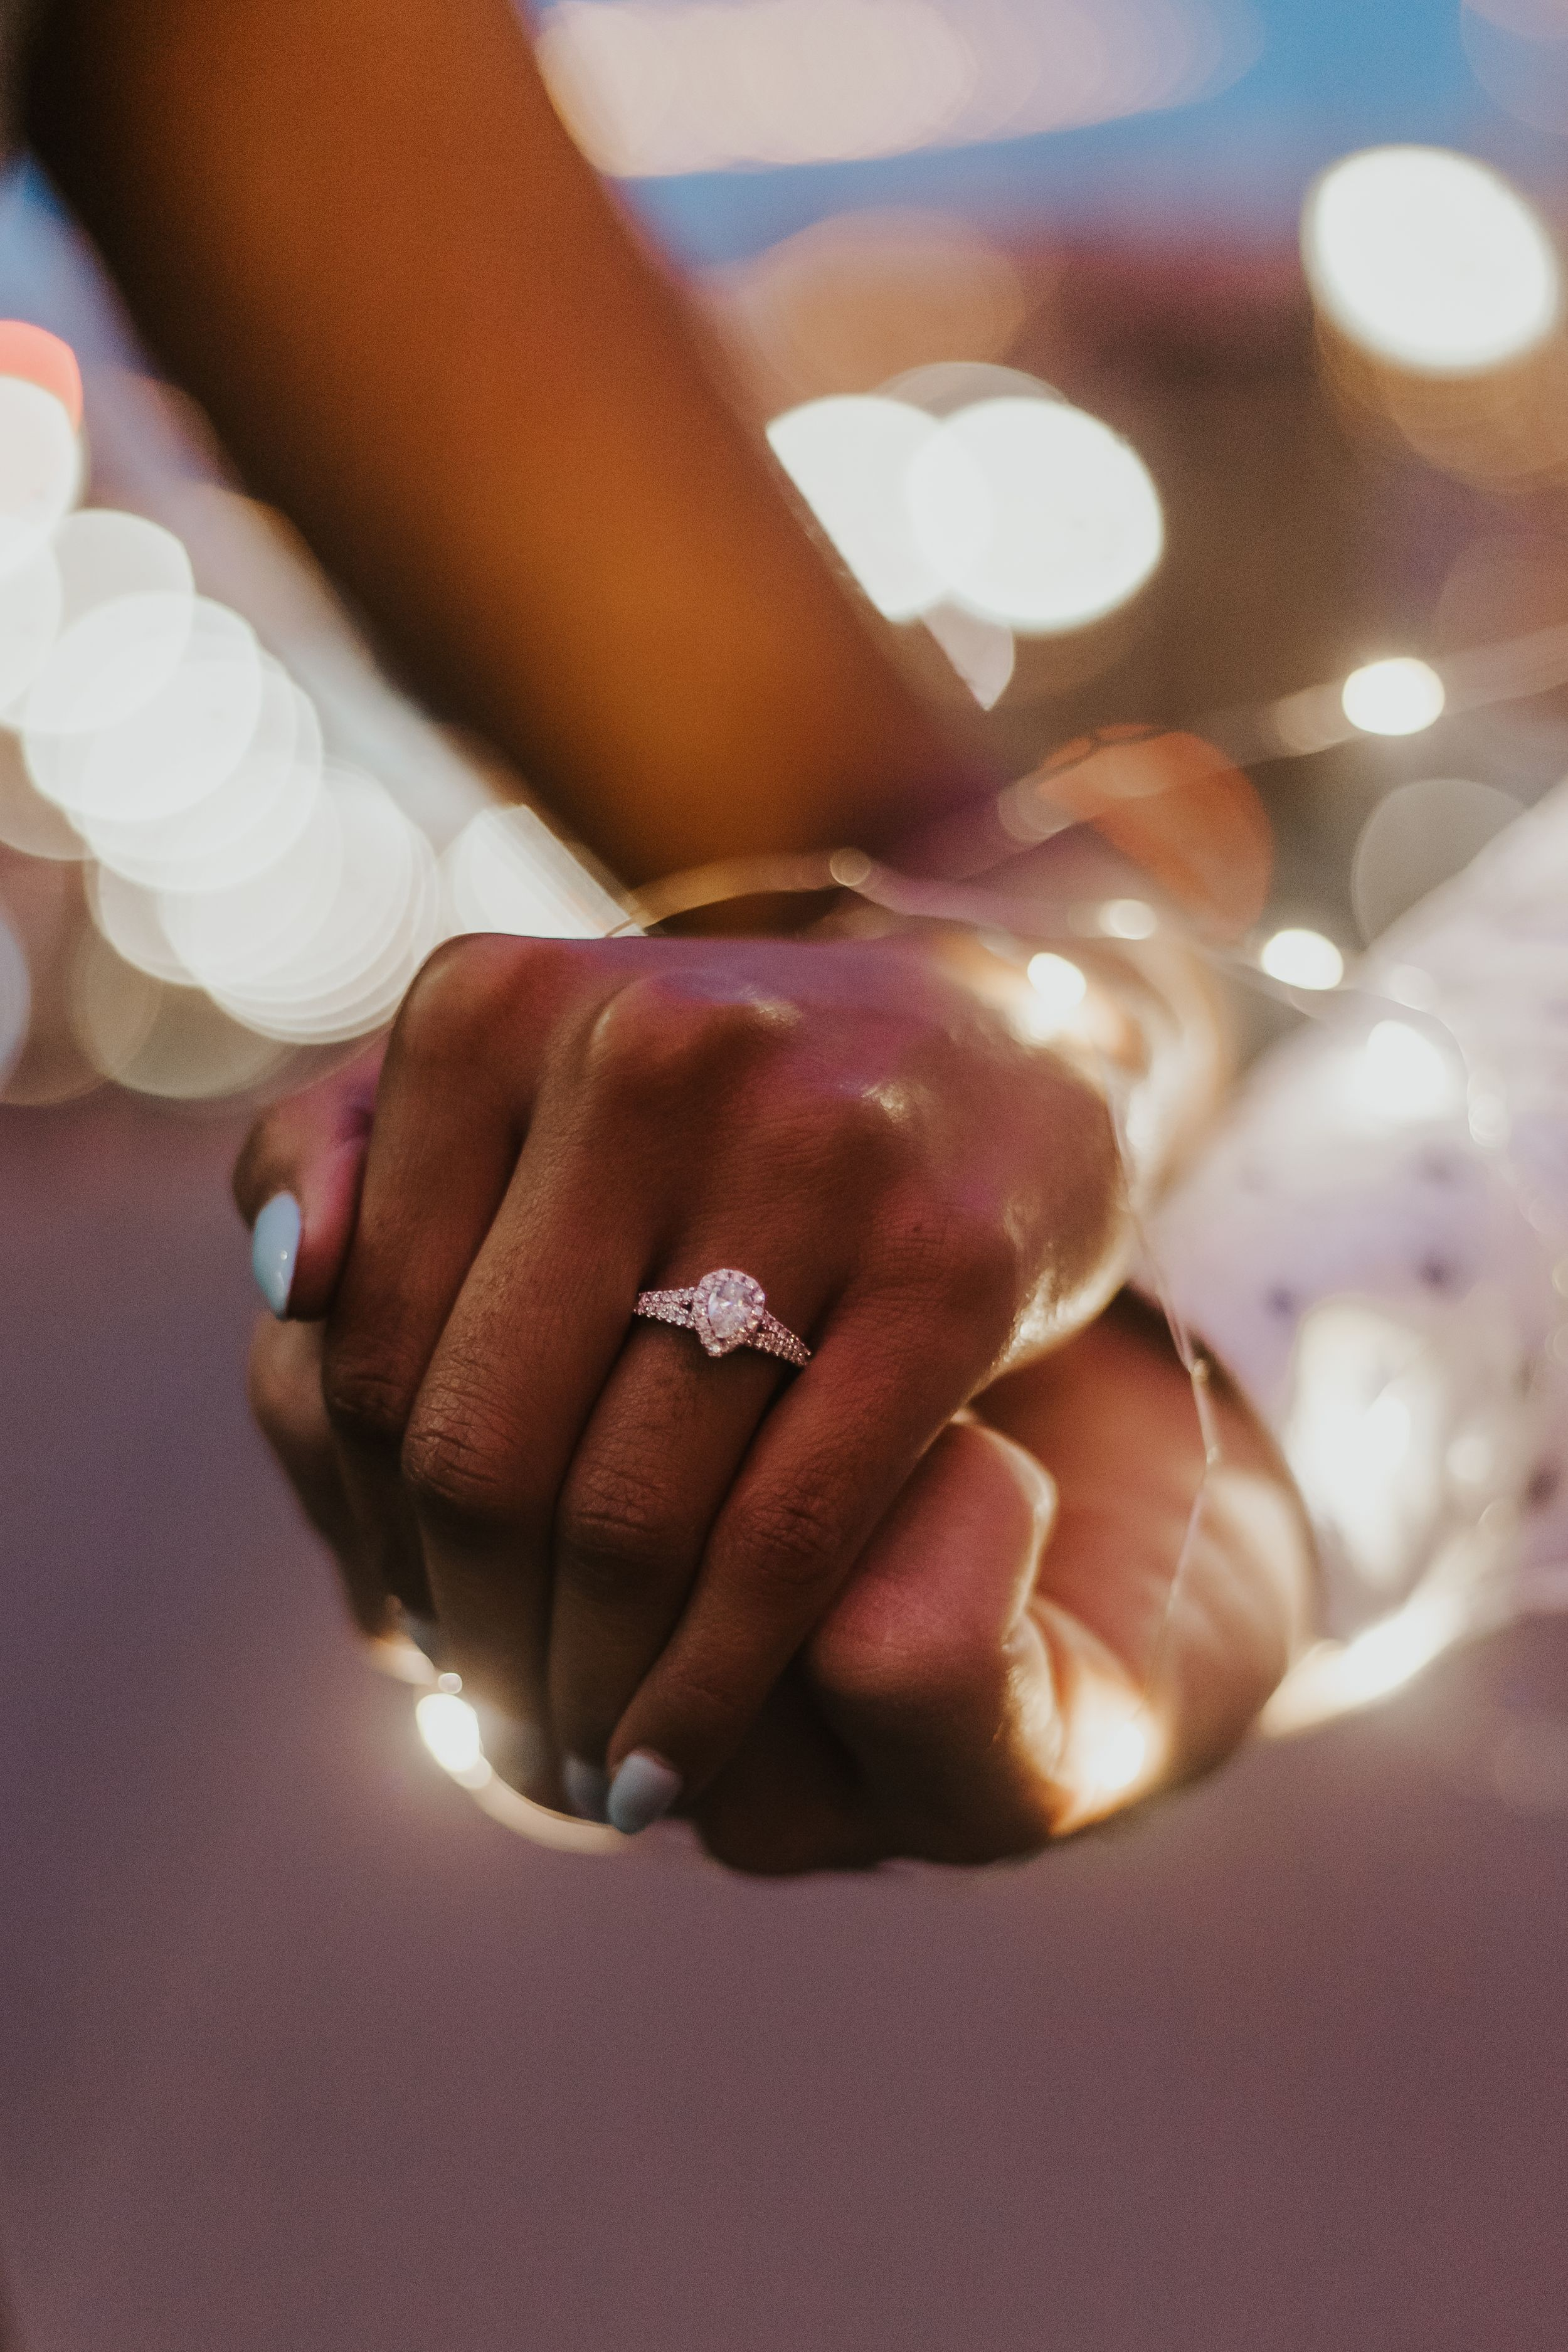 Hands with engagement ring with twinkle lights behind